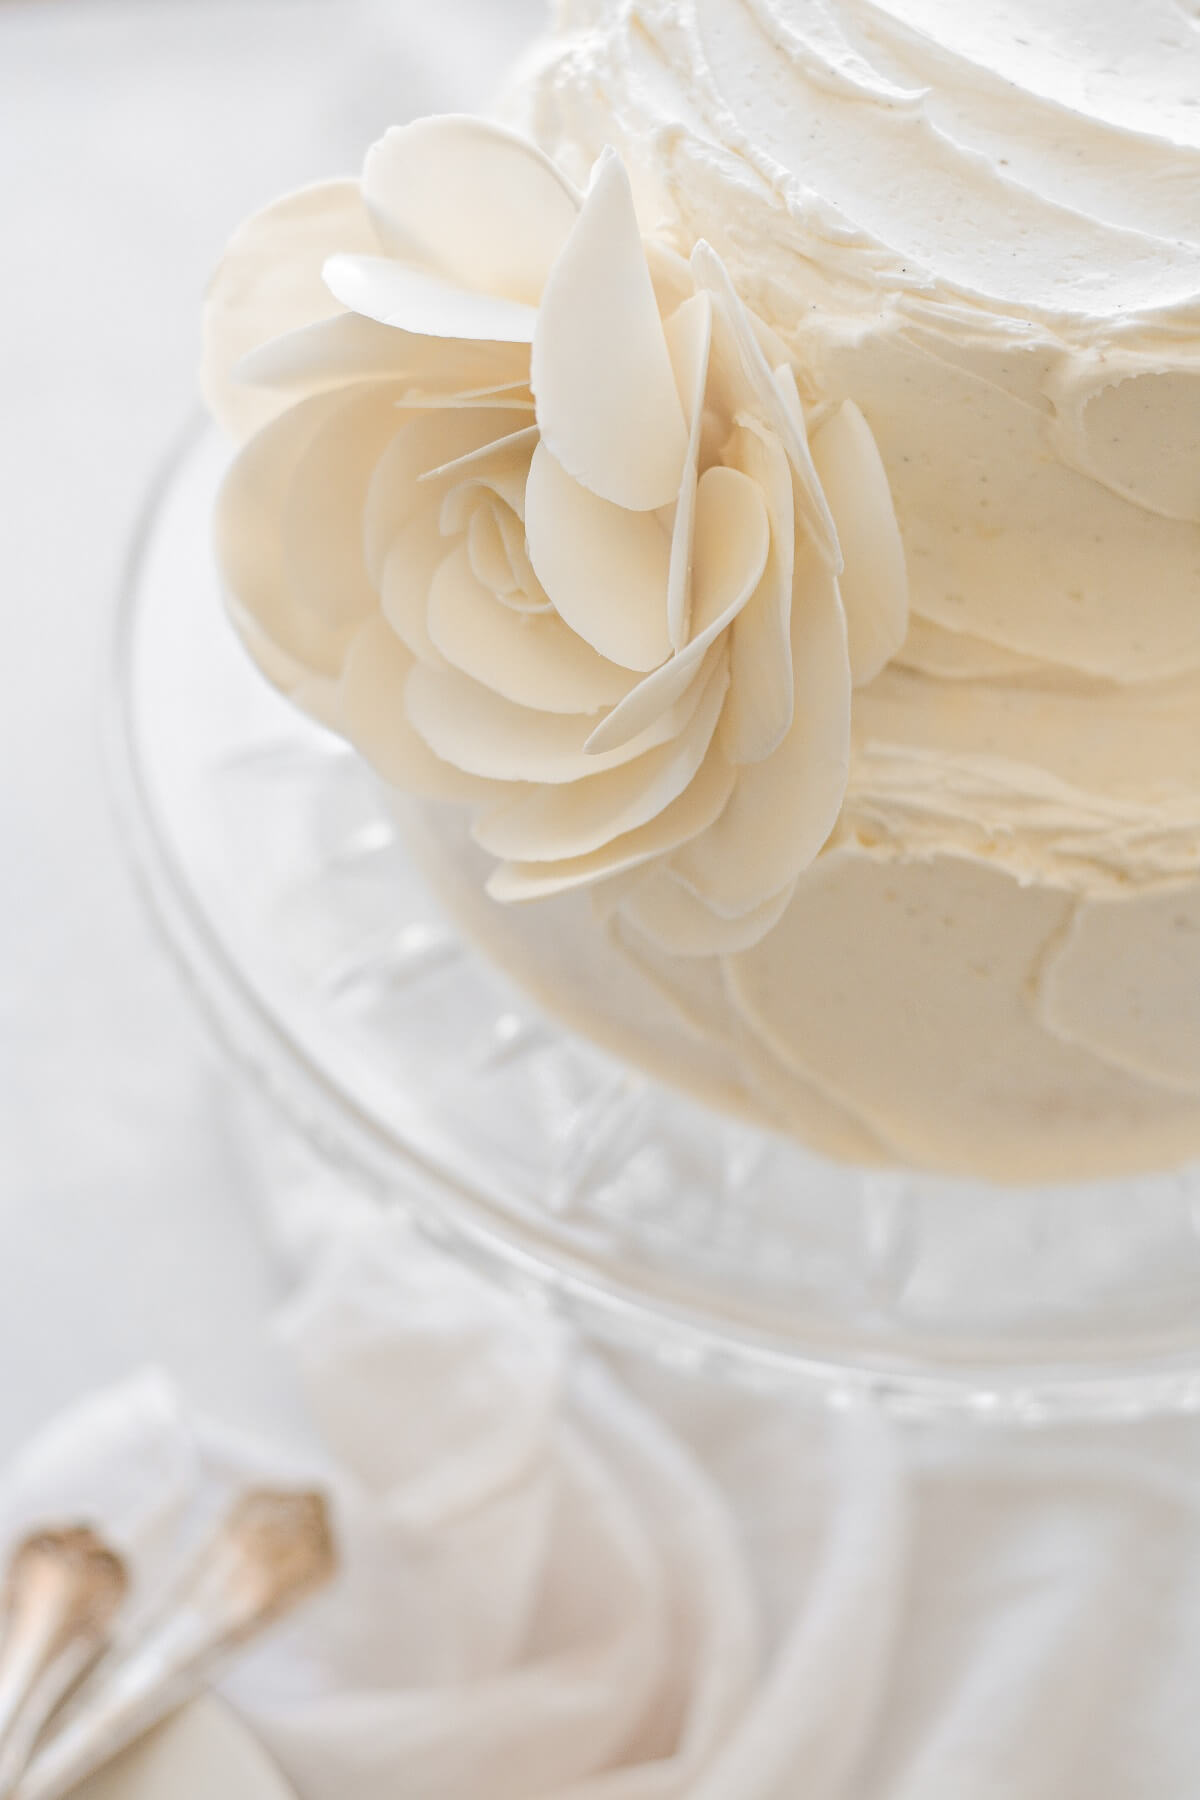 A two-tiered almond wedding cake with a white chocolate rose.